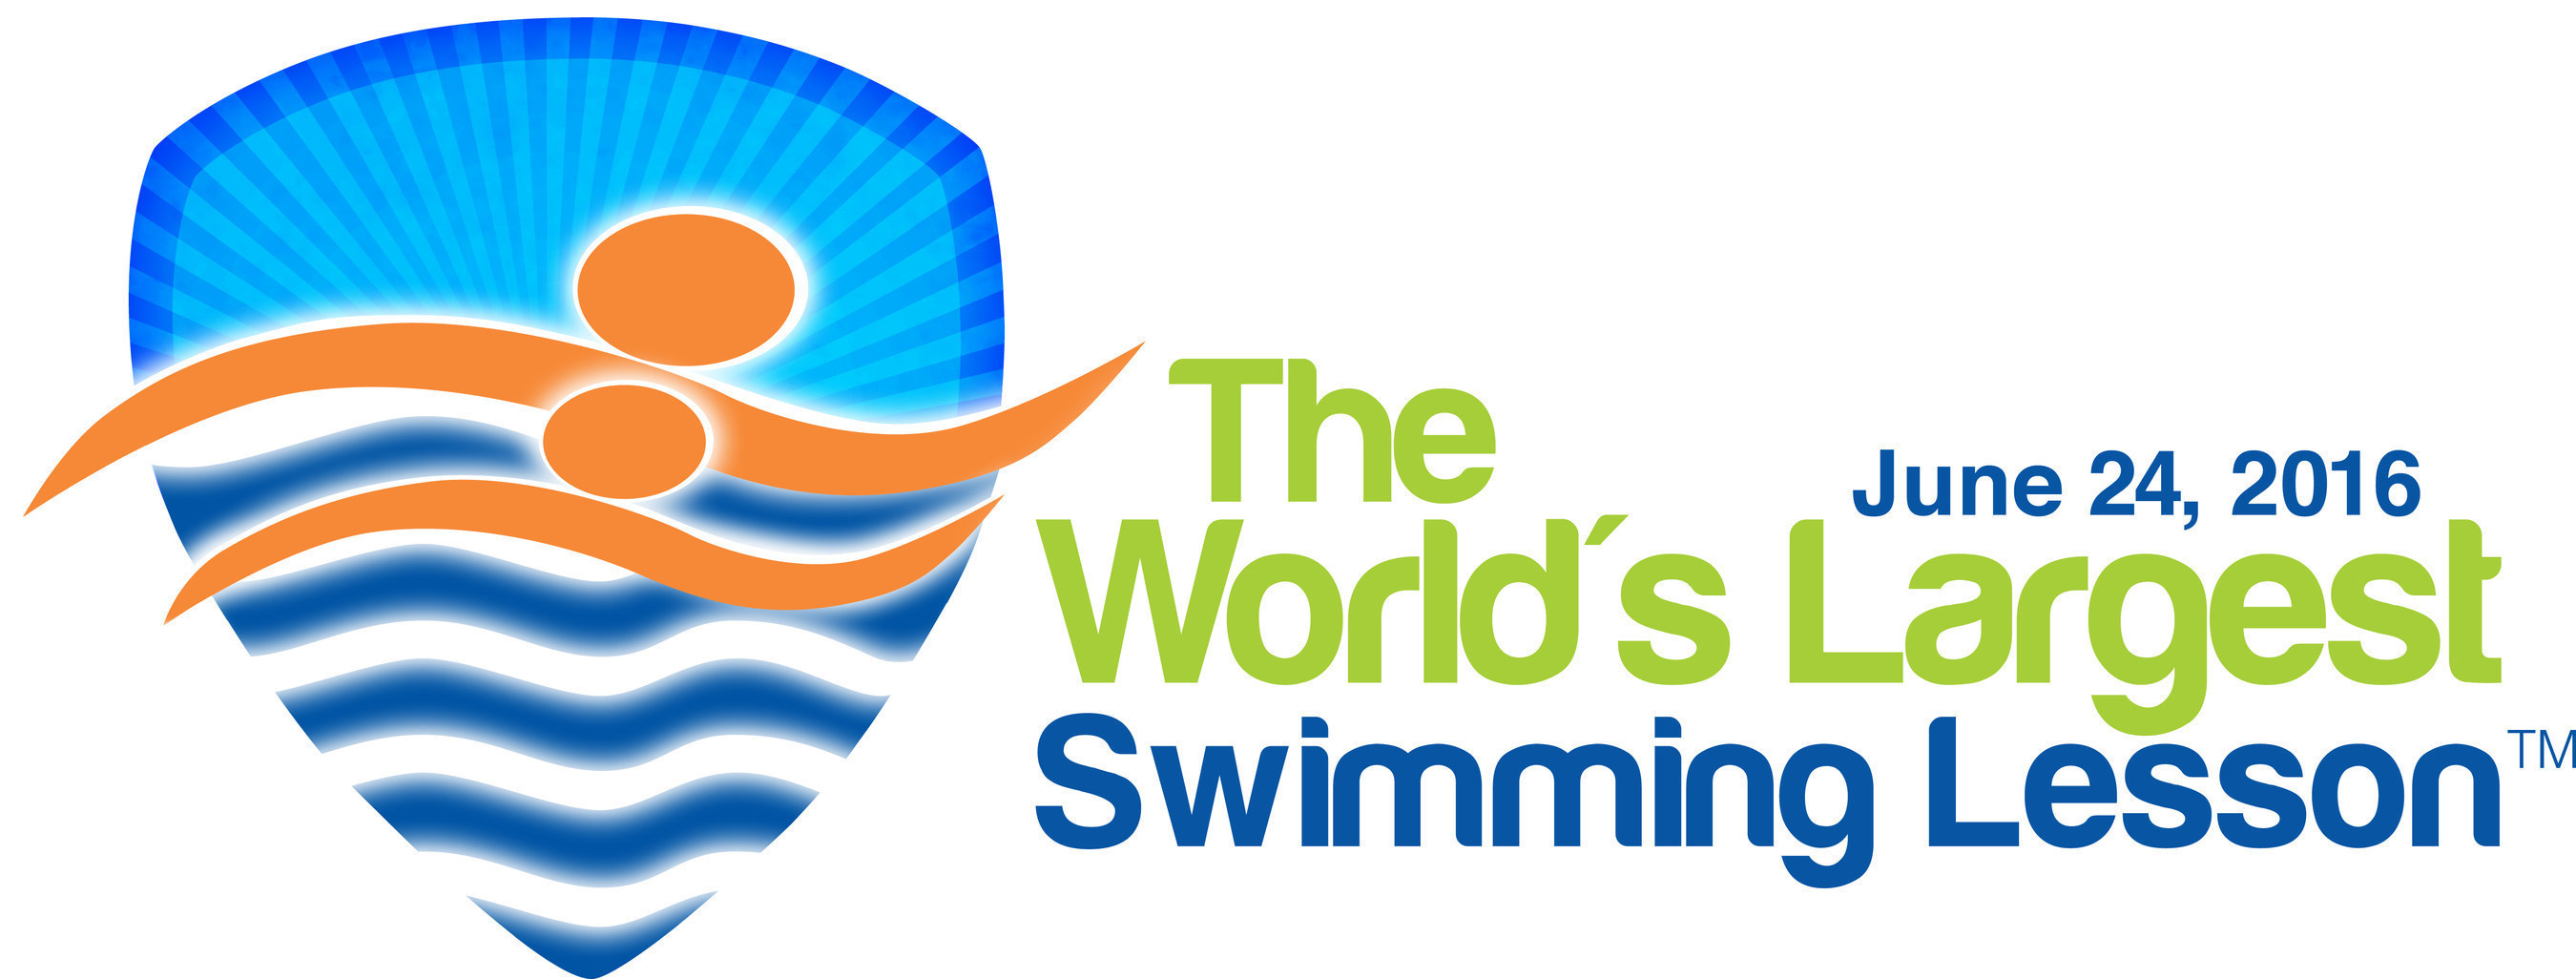 More than 45,000 swimmers expected to participate in World's Largest Swimming Lesson on Friday, June 24 to help prevent childhood drowning. More drowning accidents happen in June than any other month. Drowning is the leading cause of accidental death for children ages 1-4. Kids at 700 locations in 24 countries around the globe along with Olympic Gold Medalists Rowdy Gaines and Janet Evans uniting for the 7th straight year to set a new record and send the message Swimming Lessons Save Lives. #WLSL #Learn2Swim #DrowningIsPreventable @TheWLSL